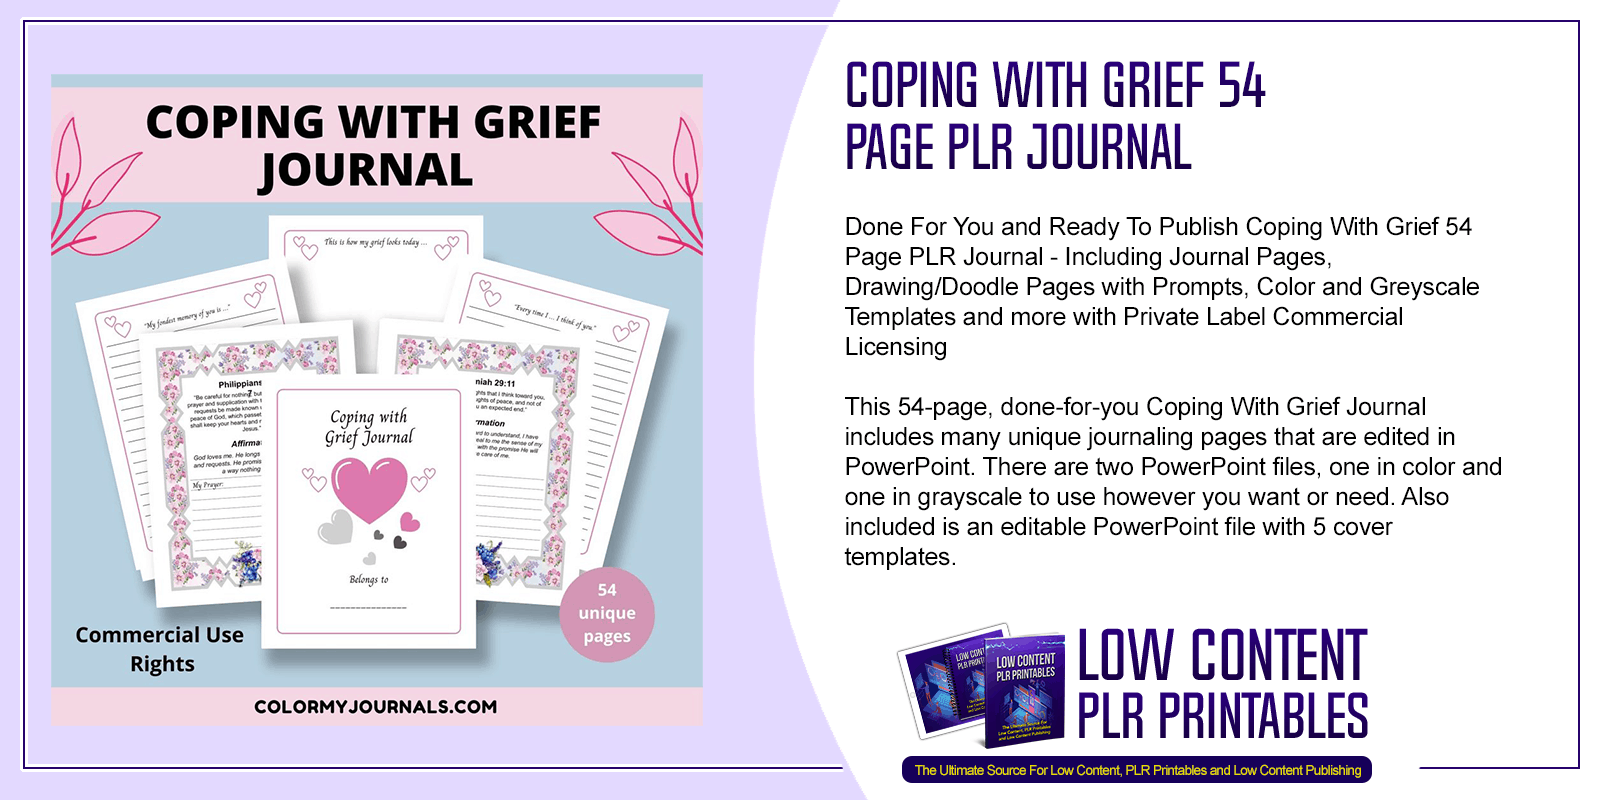 Coping With Grief 54 Page PLR Journal